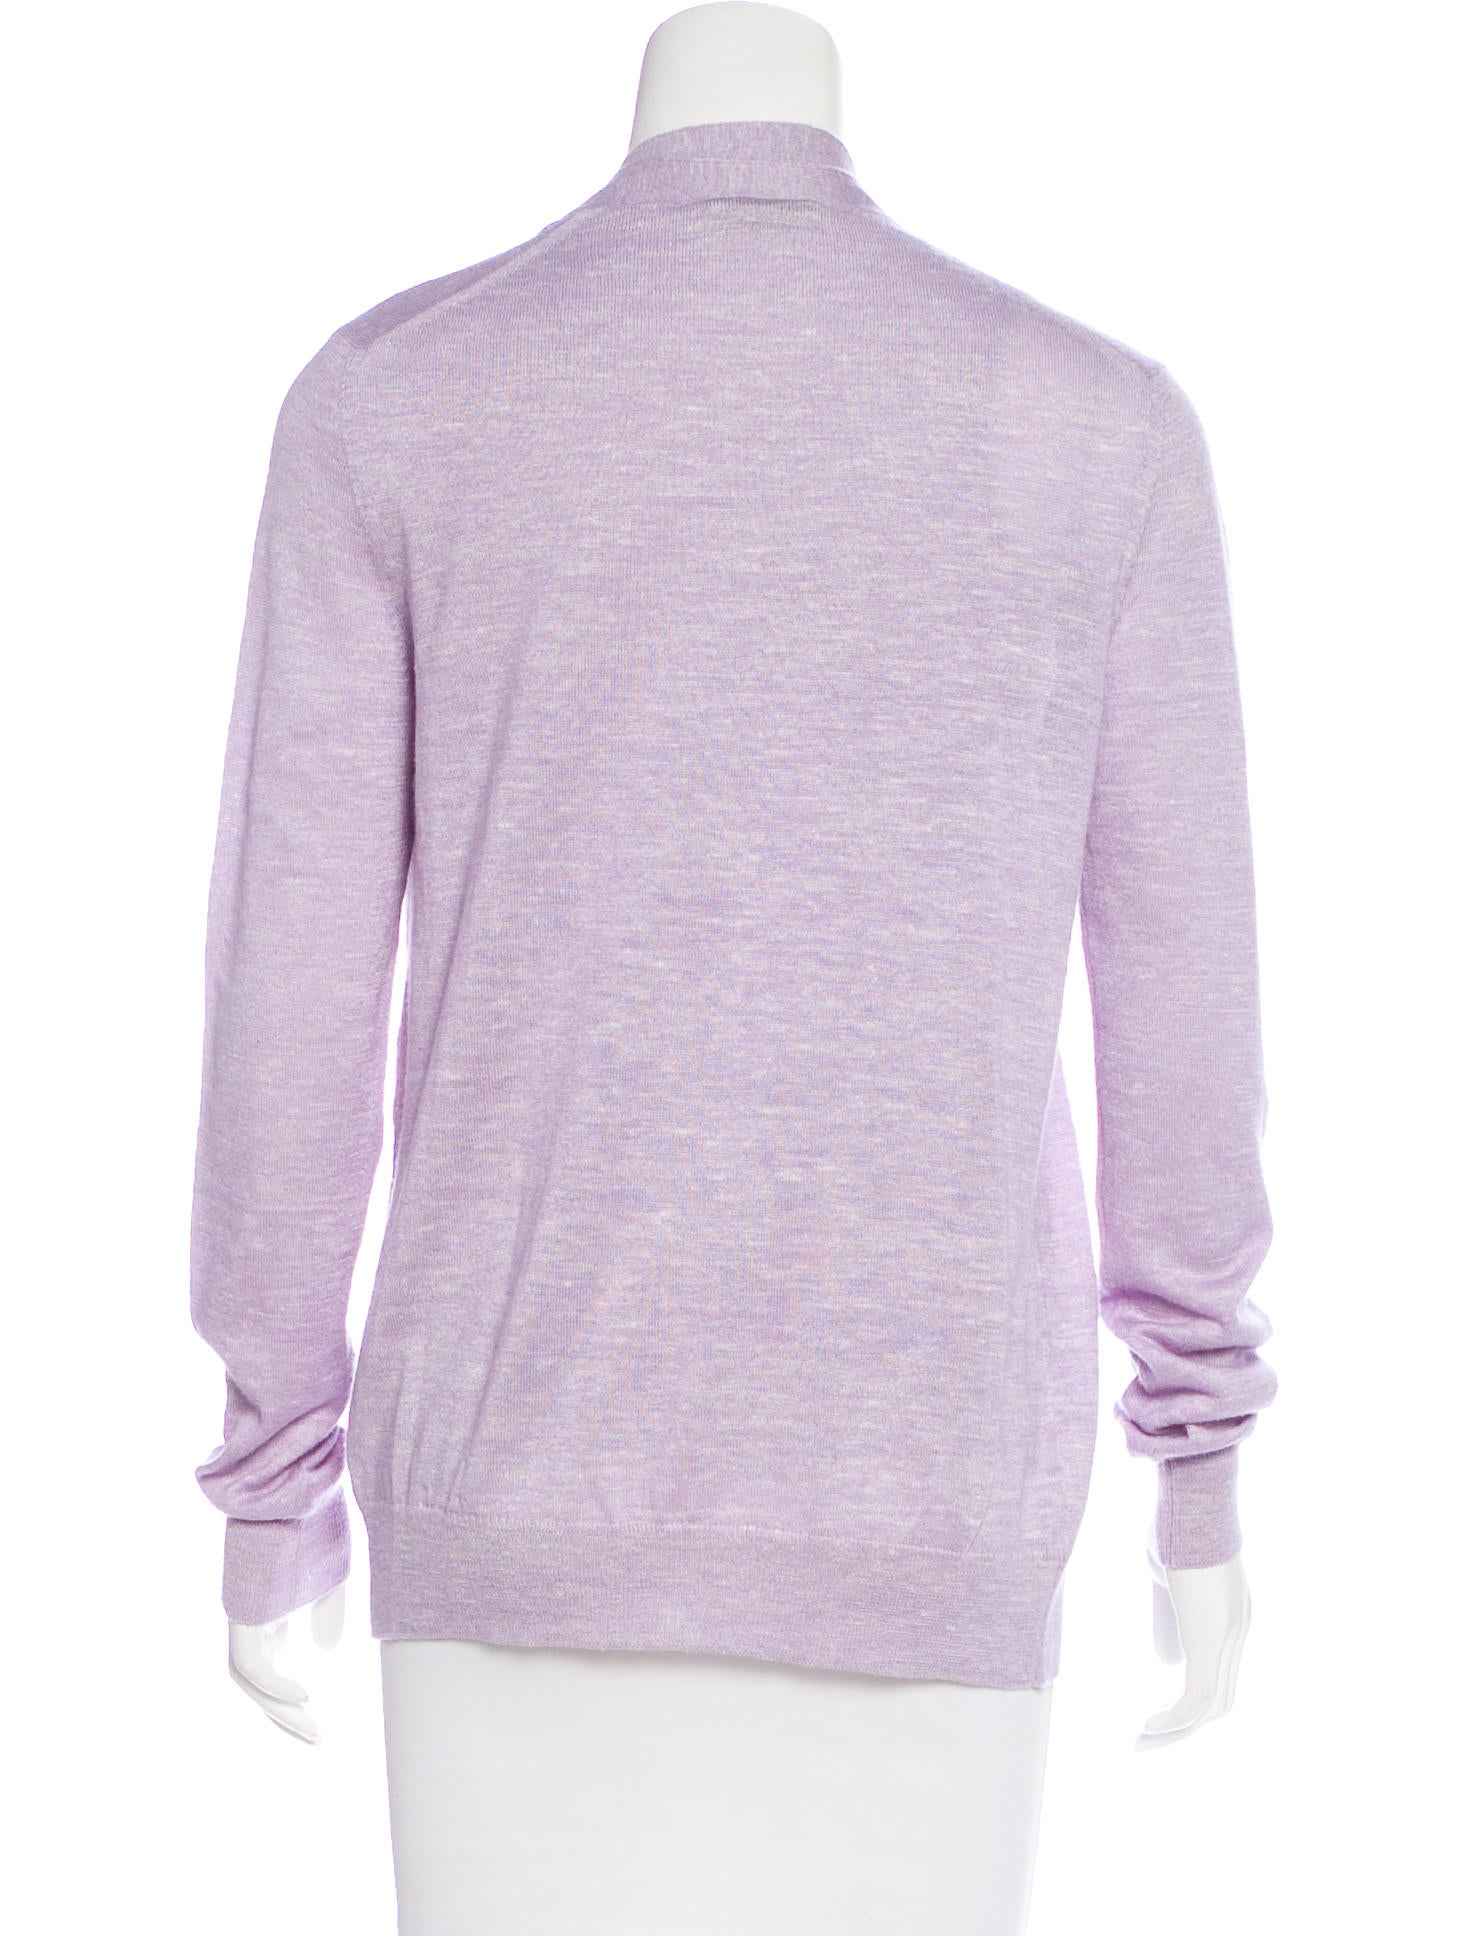 Loro Piana Cashmere Blend Sweater Set Clothing Lor38882 The